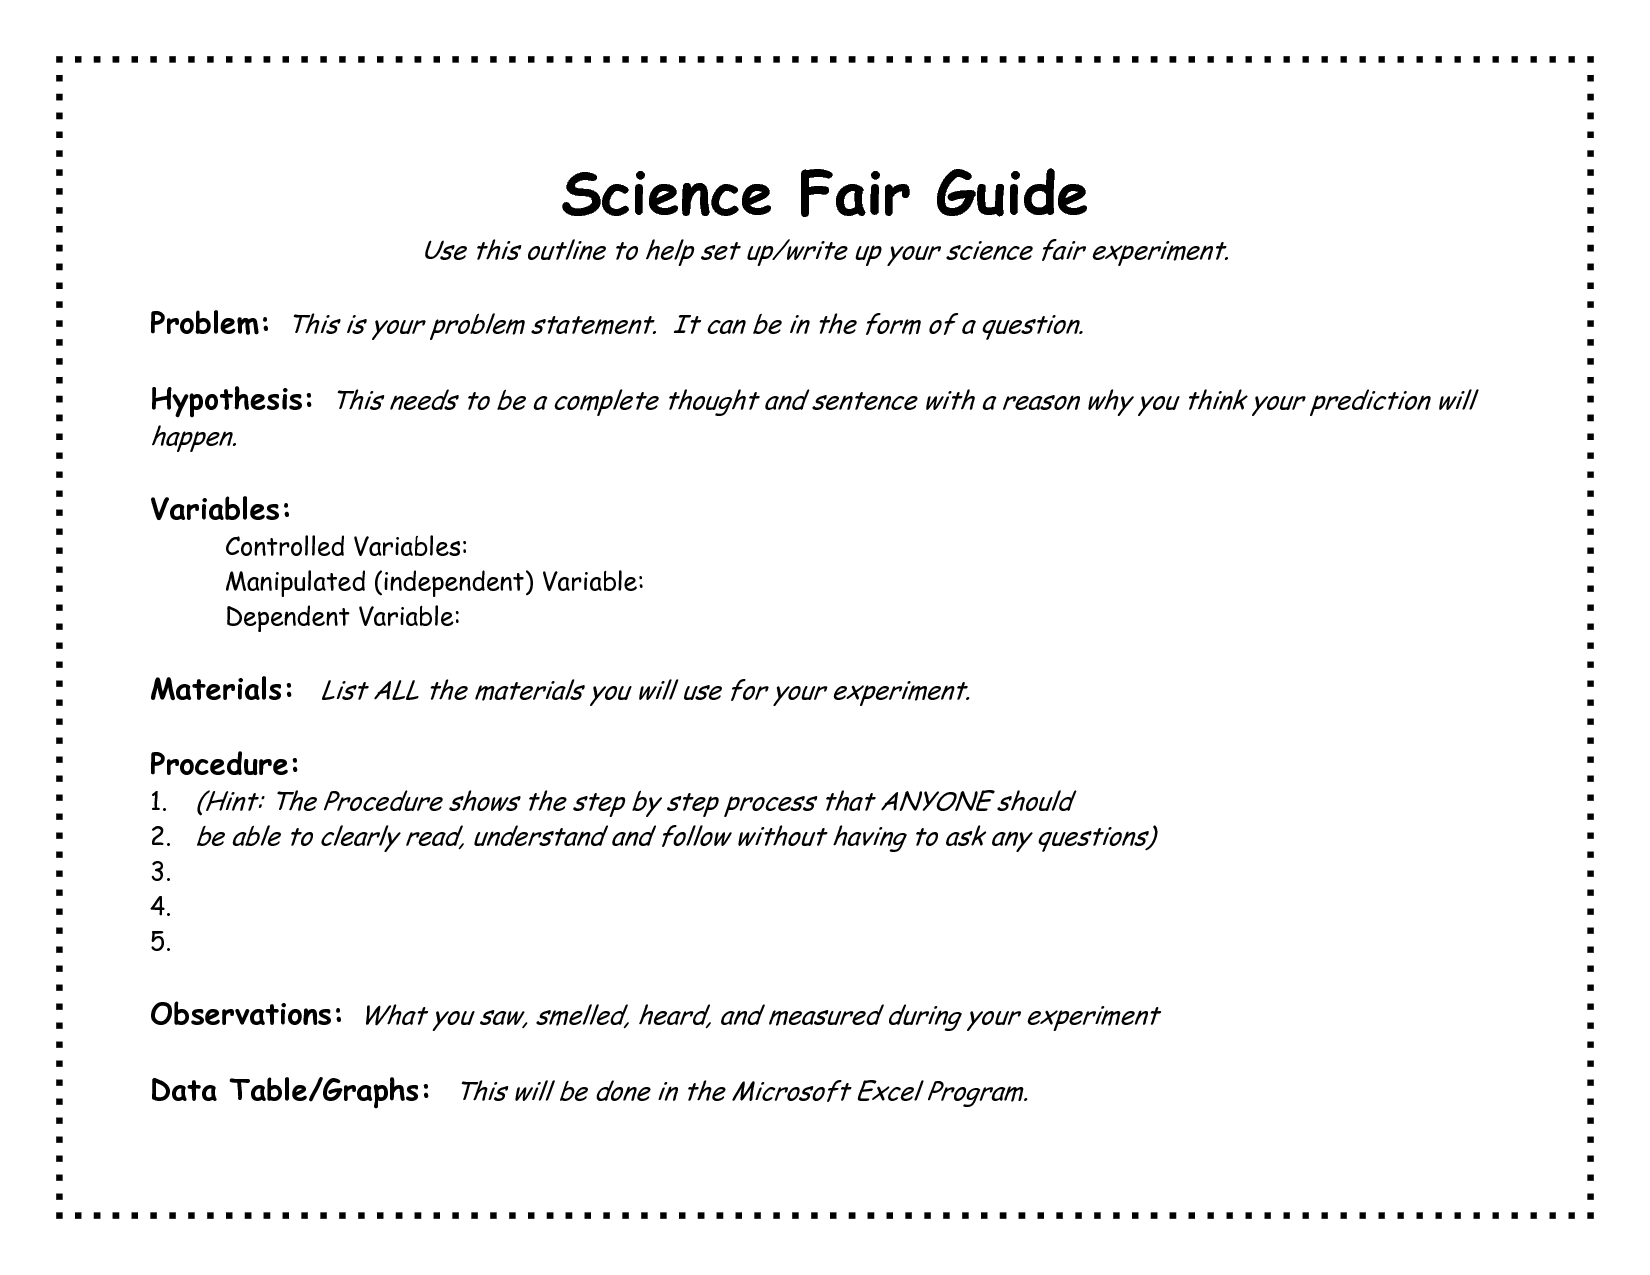 005 Science Fair Researchs Best Research Papers Paper Introduction Sample Example Apa Format Full